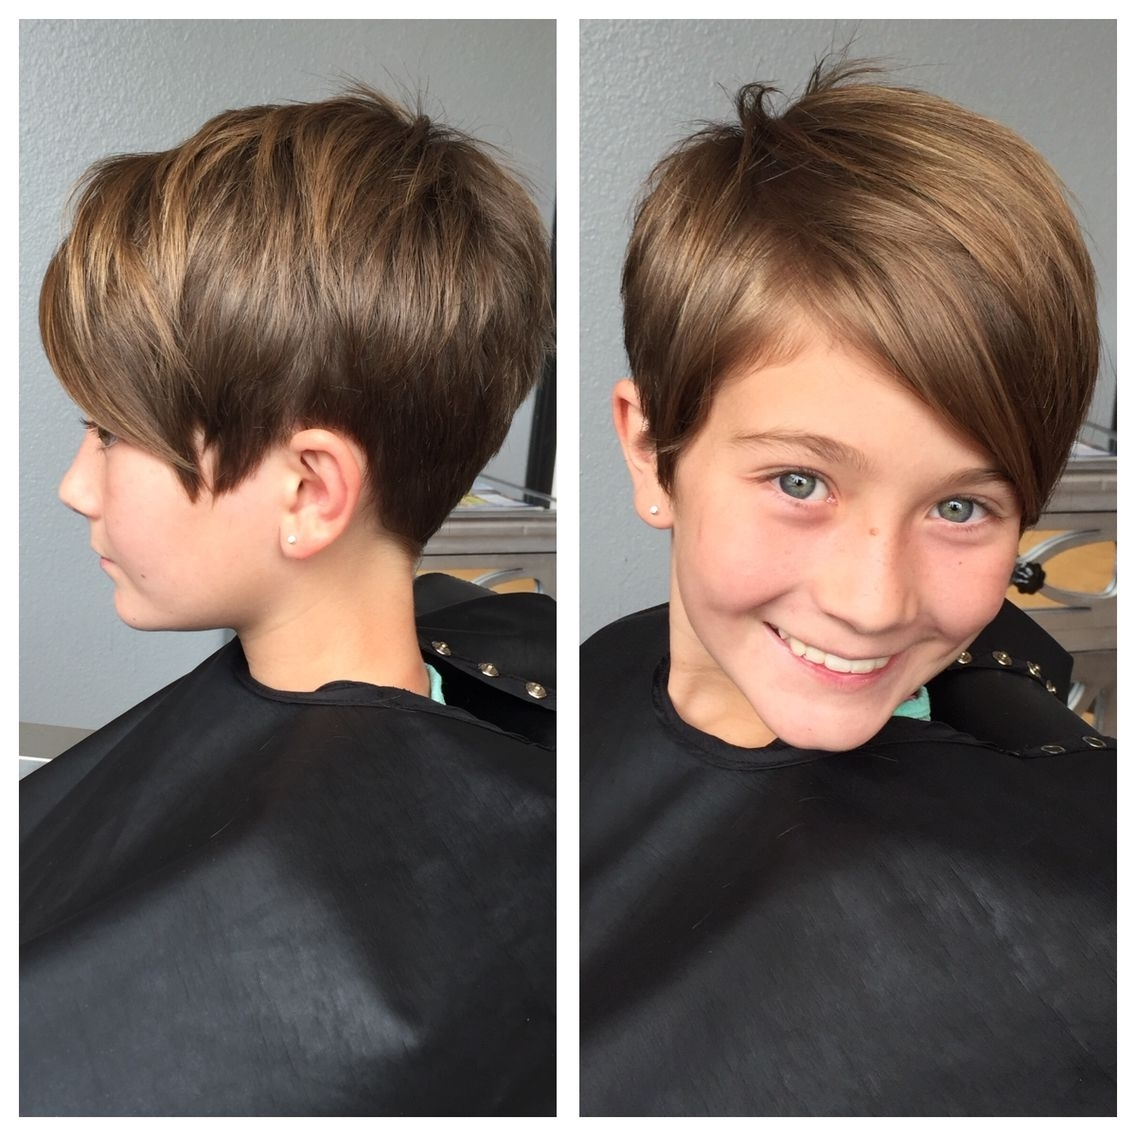 Kids Pixie Haircut | Hair | Pinterest | Pixie Haircut, Pixies And Inside Most Recently Pixie Hairstyles For Little Girls (View 2 of 15)